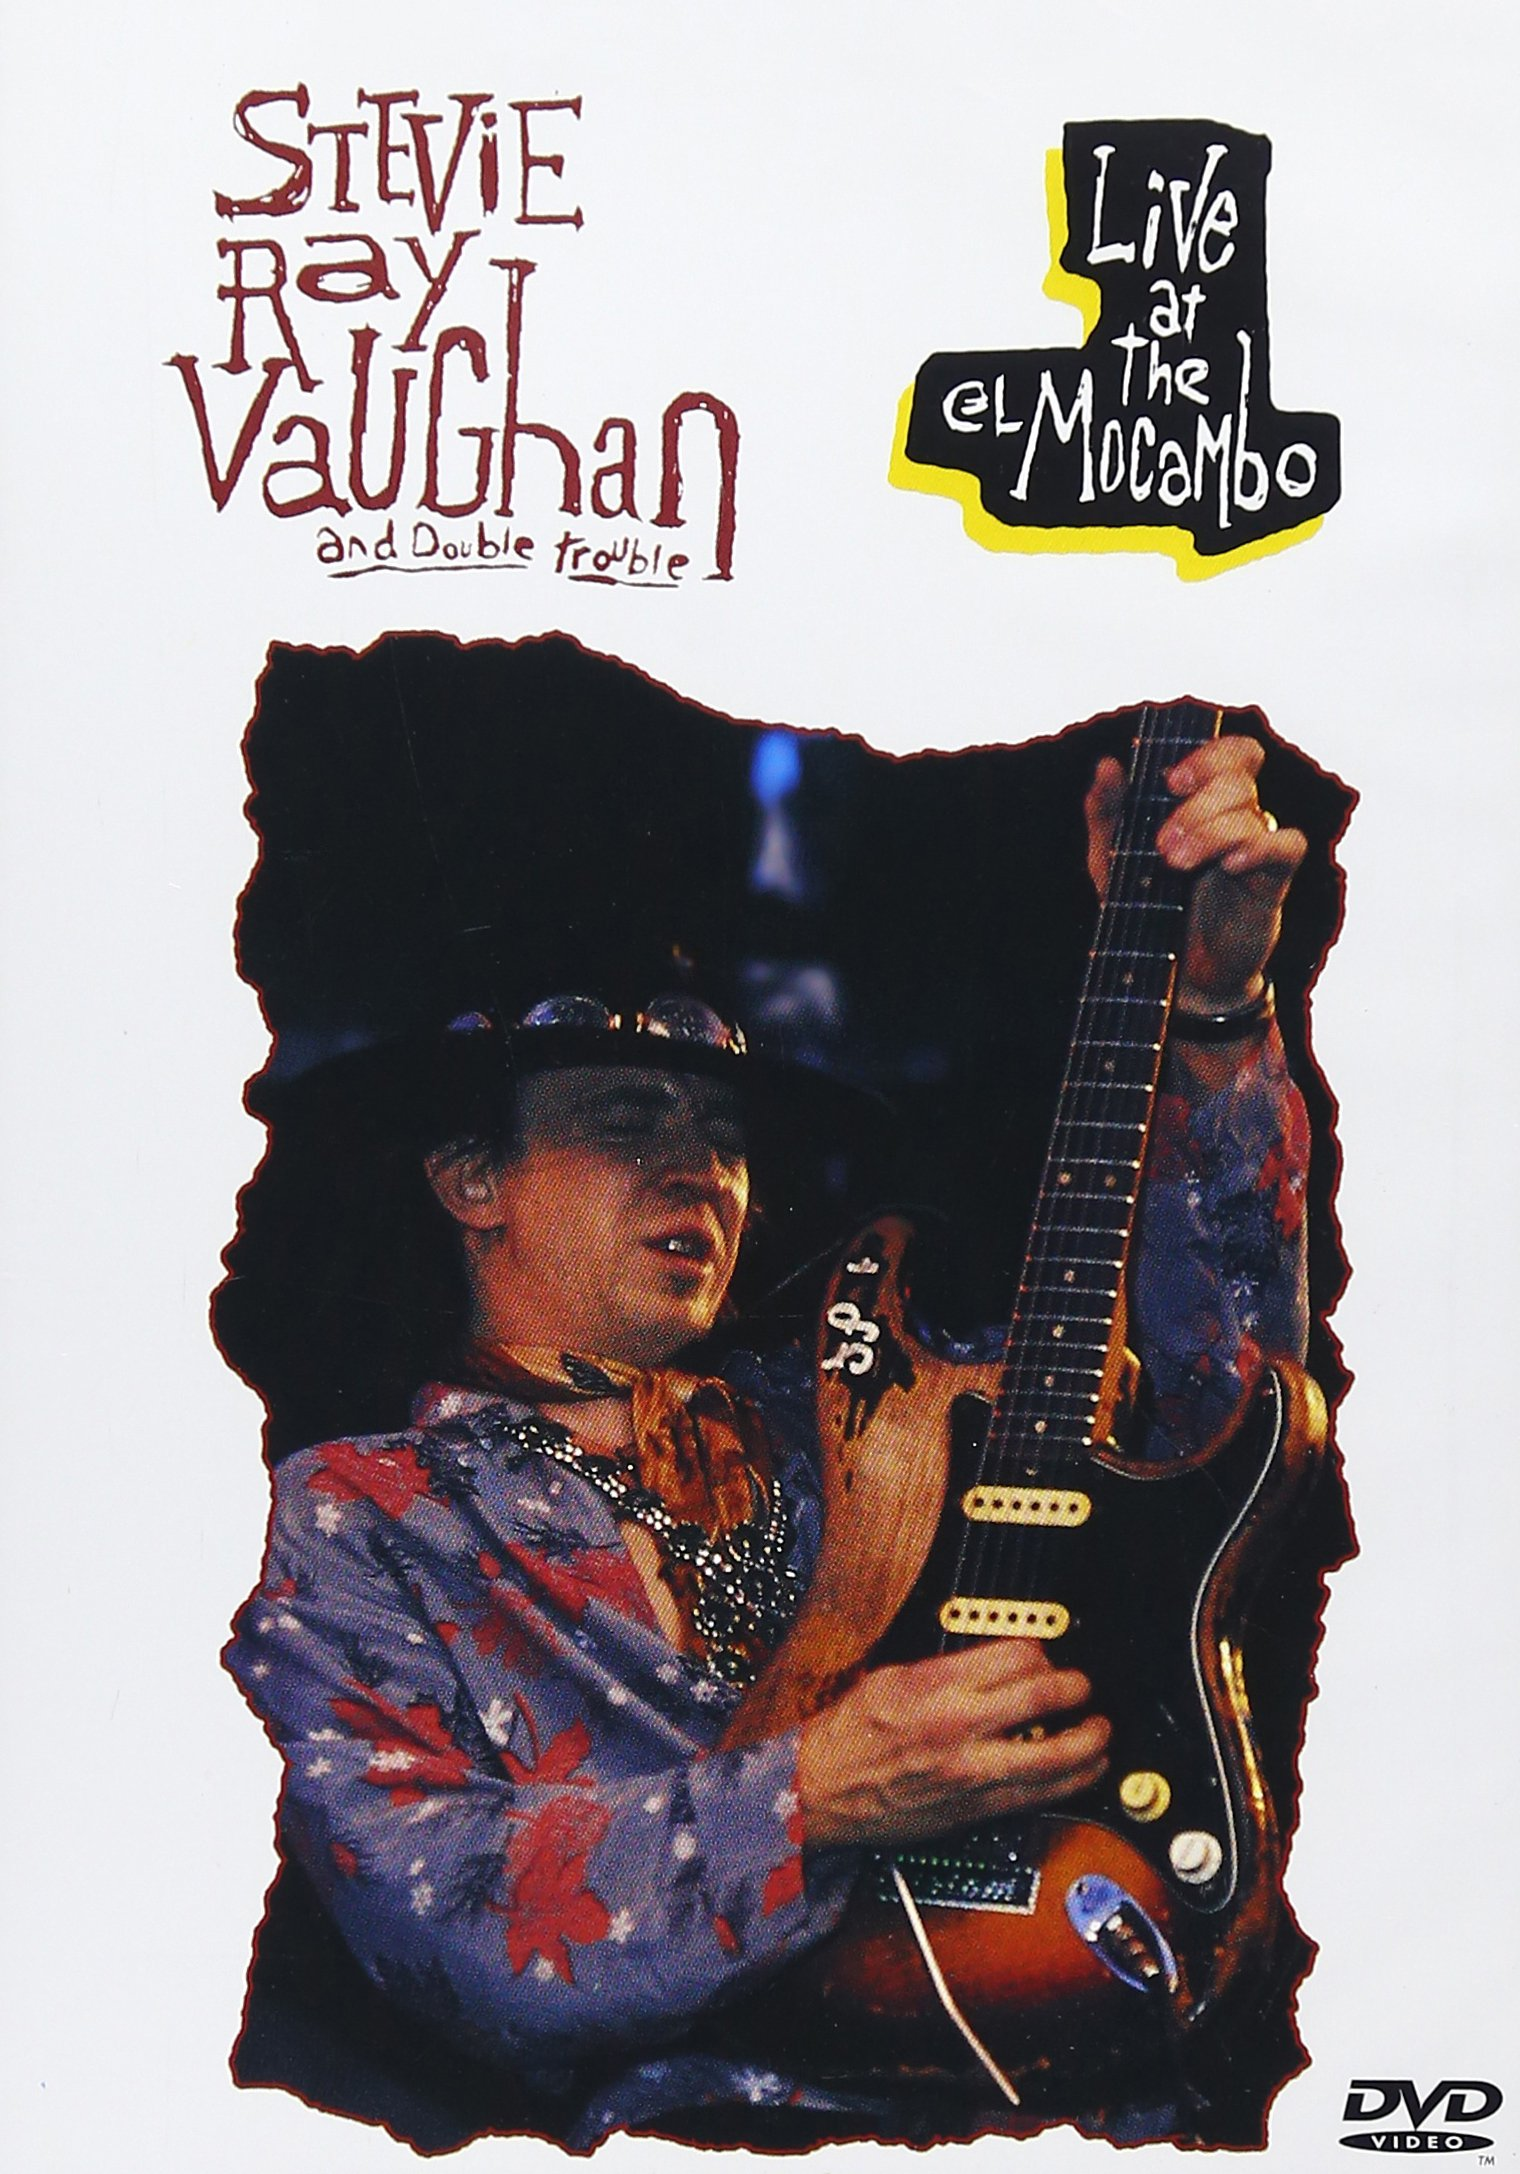 Stevie Ray Vaughan & Double Trouble - Live at the El Mocambo 1983 by VAUGHAN,STEVIE RAY & DOUBLE TROUBLE